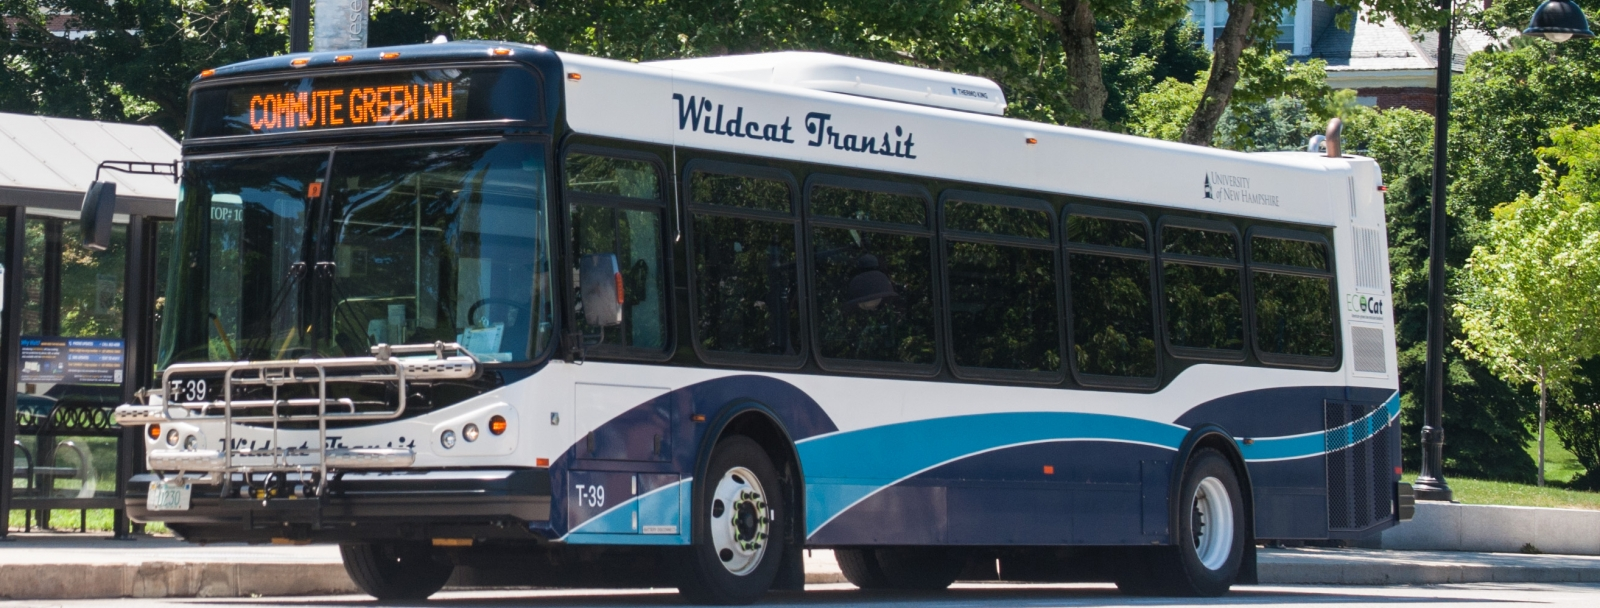 WildCat Bus transit